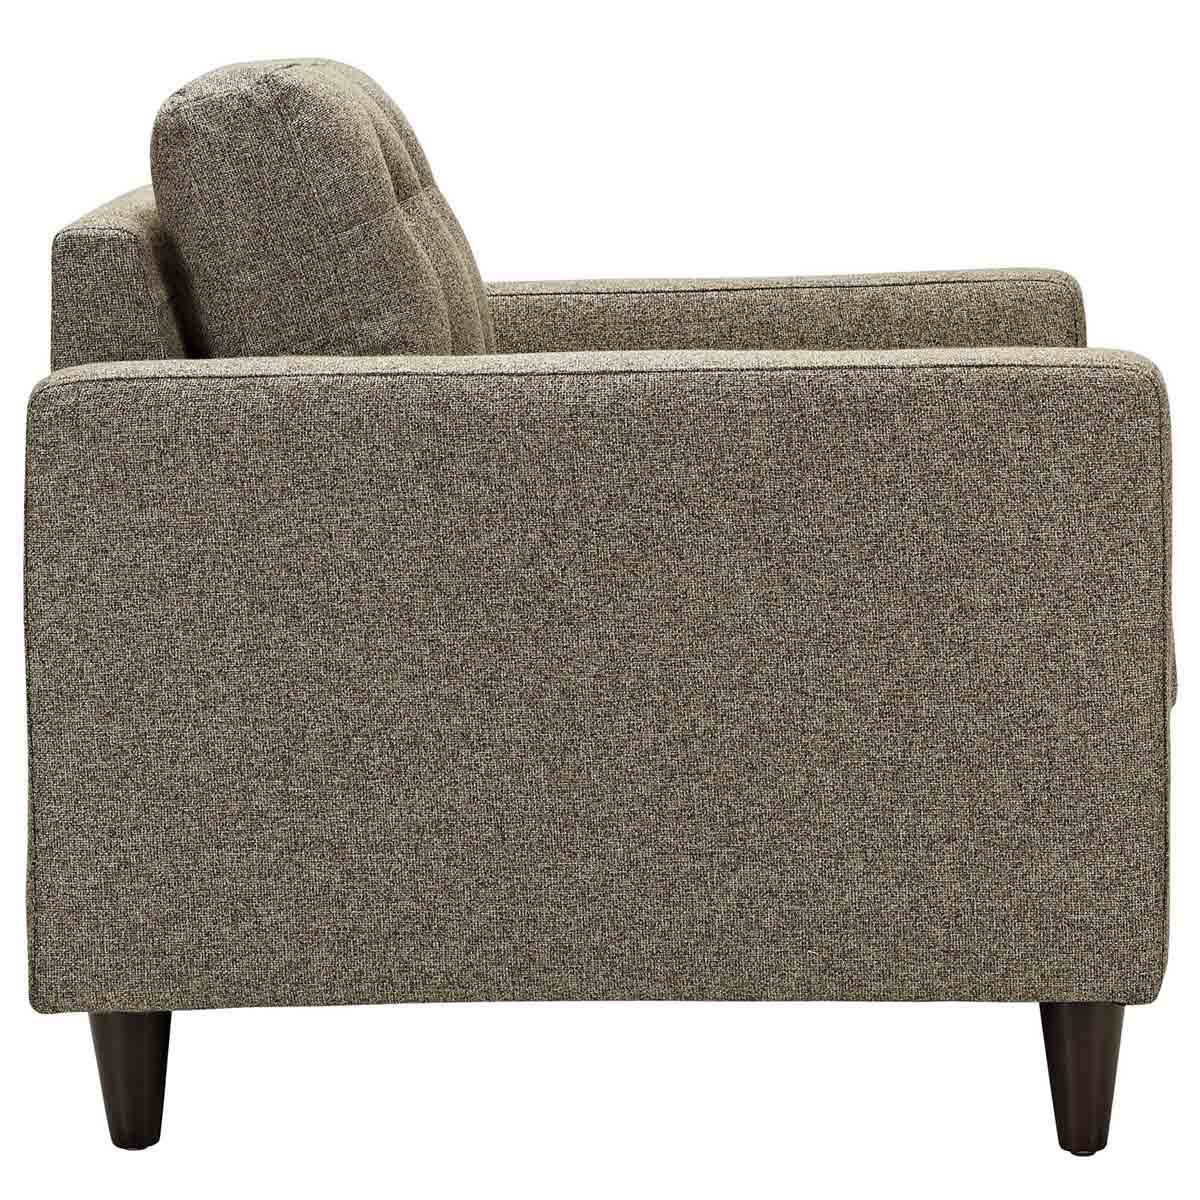 Modway Empress 3PC Sofa and Armchairs Set - Oatmeal